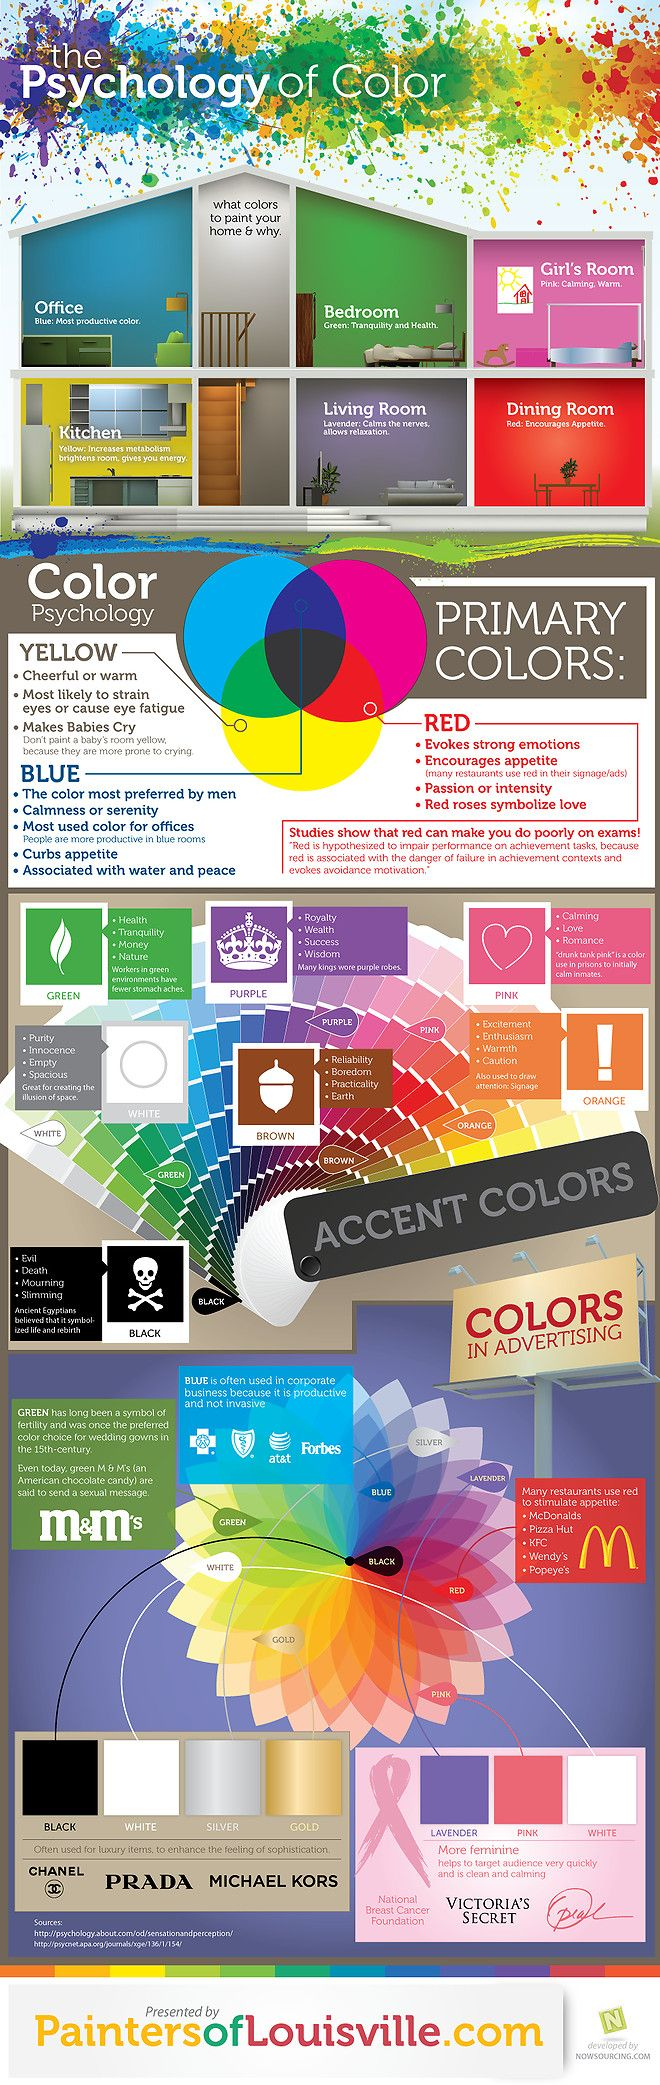 #Infographic The Psychology of Color - CoolHomepages Web Design Gallery